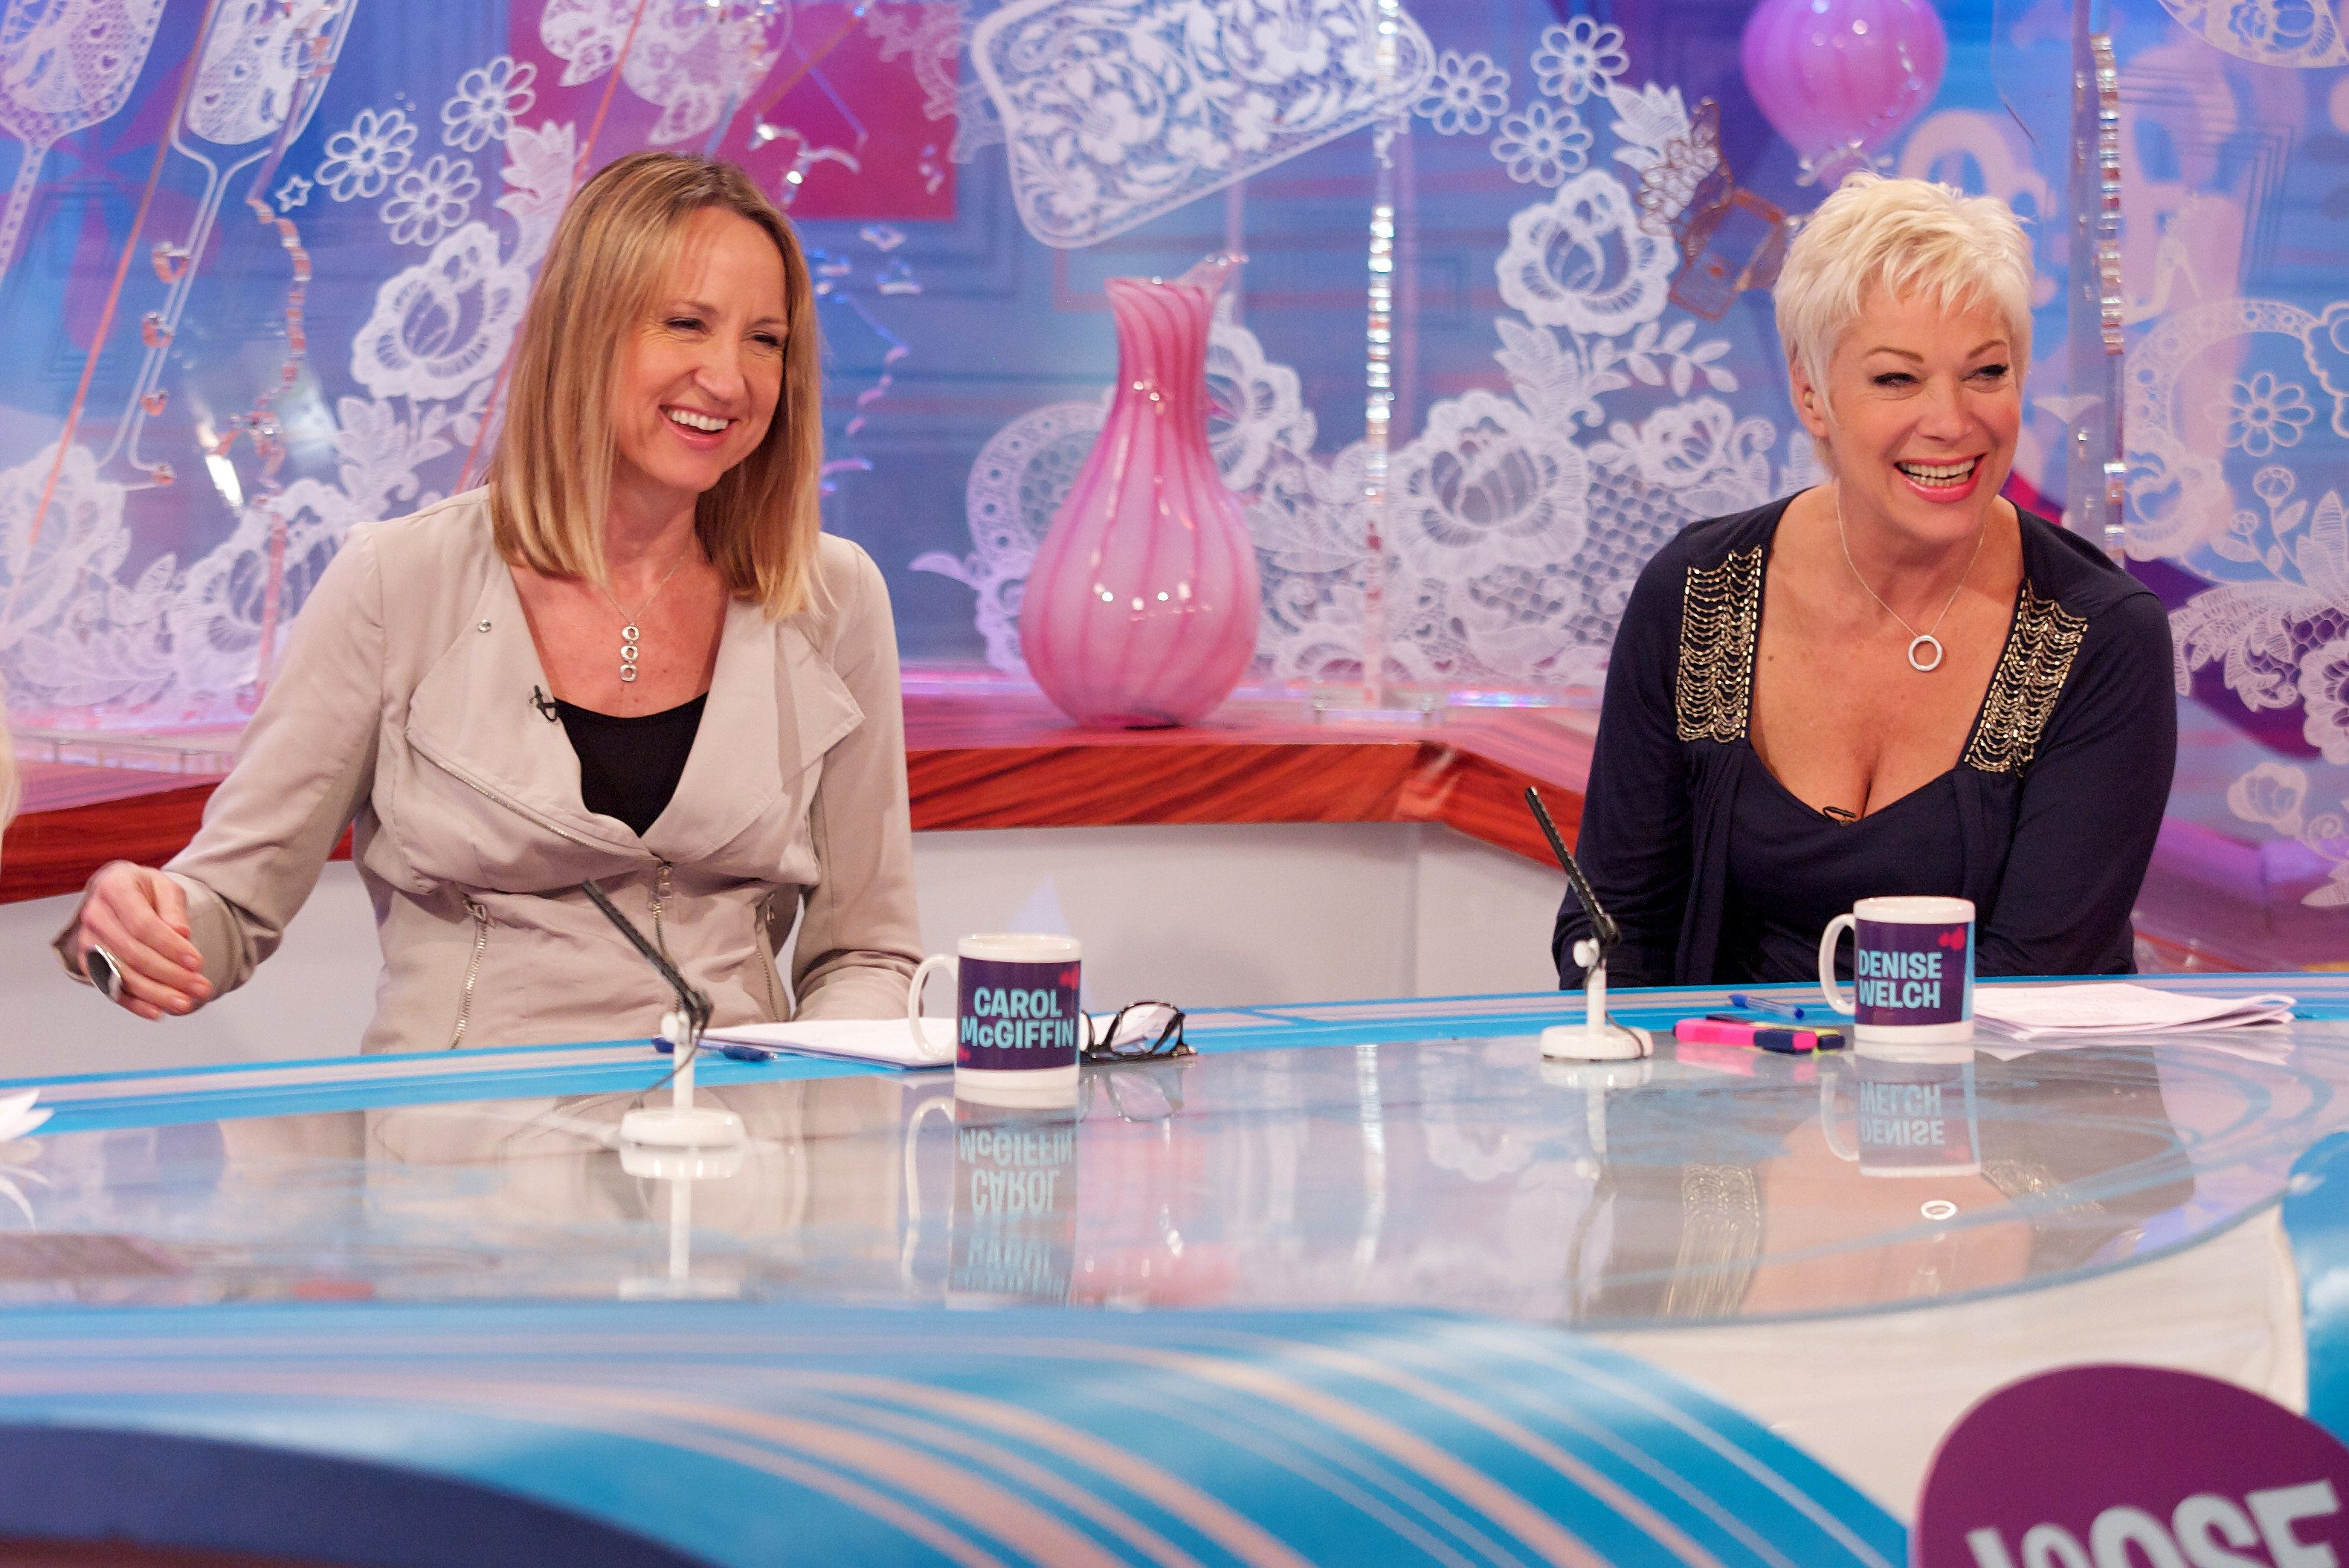 'Loose Women' Airbrushes Legends Out Of 2,500th Show